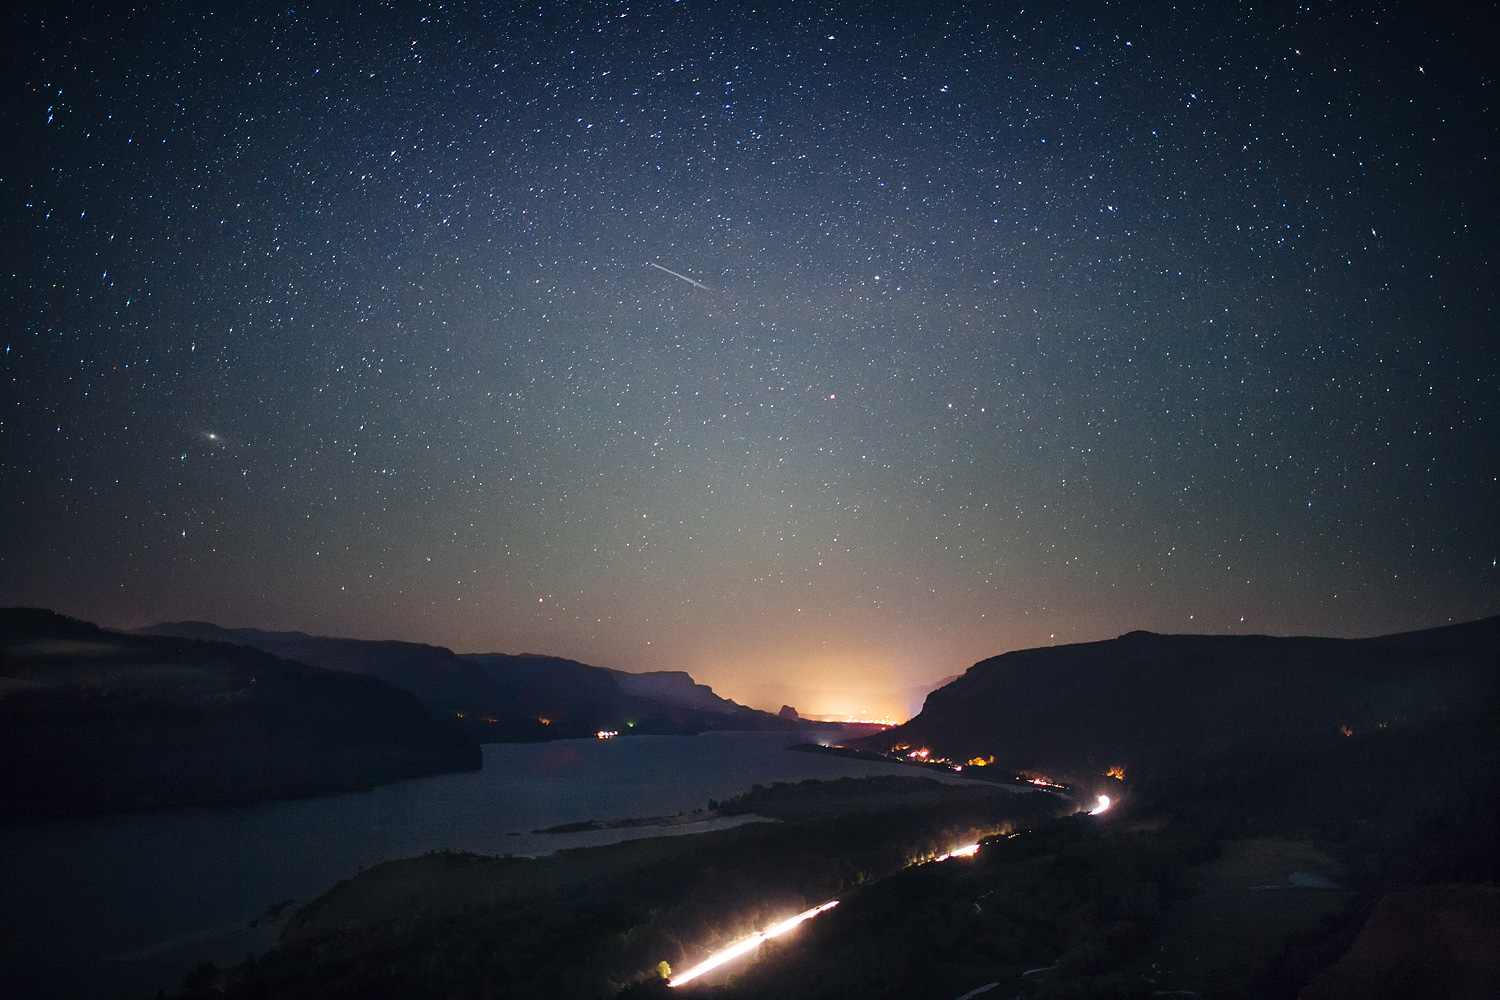 Shooting star above the Columbia River